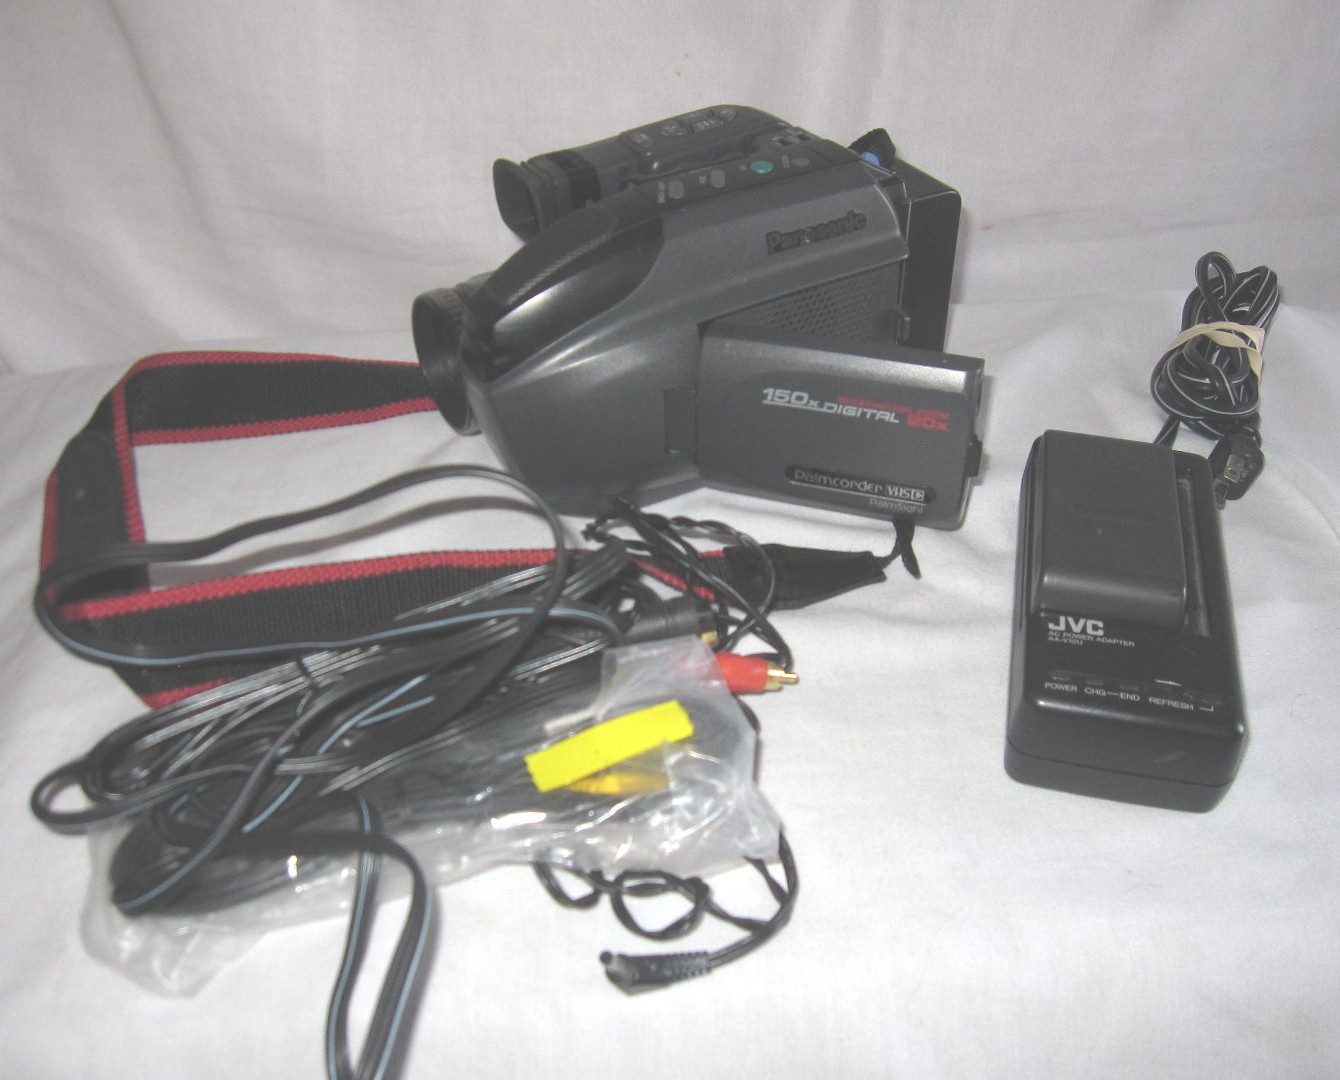 Panasonic Pv L501d Vhs C Palmcorder Camcorder Video Camera Two Batteries Charger On Popscreen